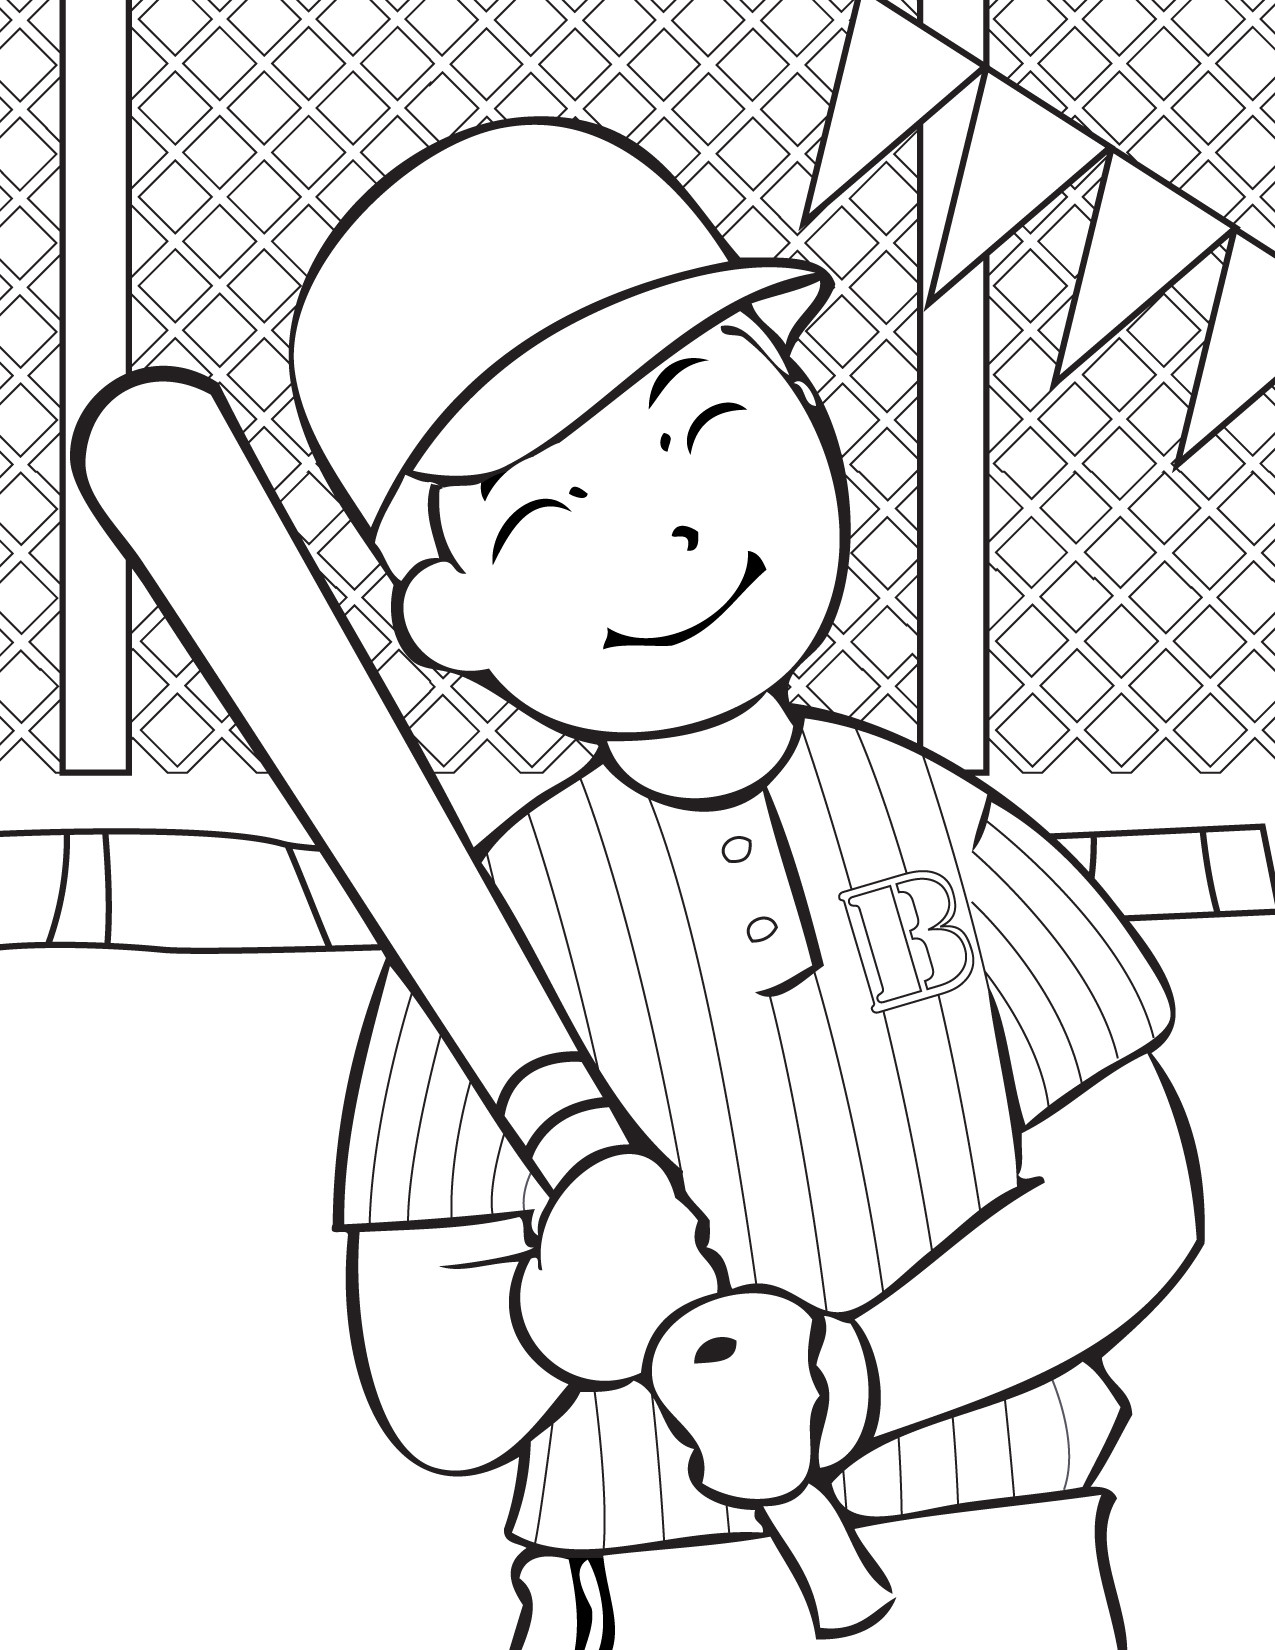 Best ideas about Sports Coloring Sheets For Kids . Save or Pin Free Printable Baseball Coloring Pages for Kids Best Now.